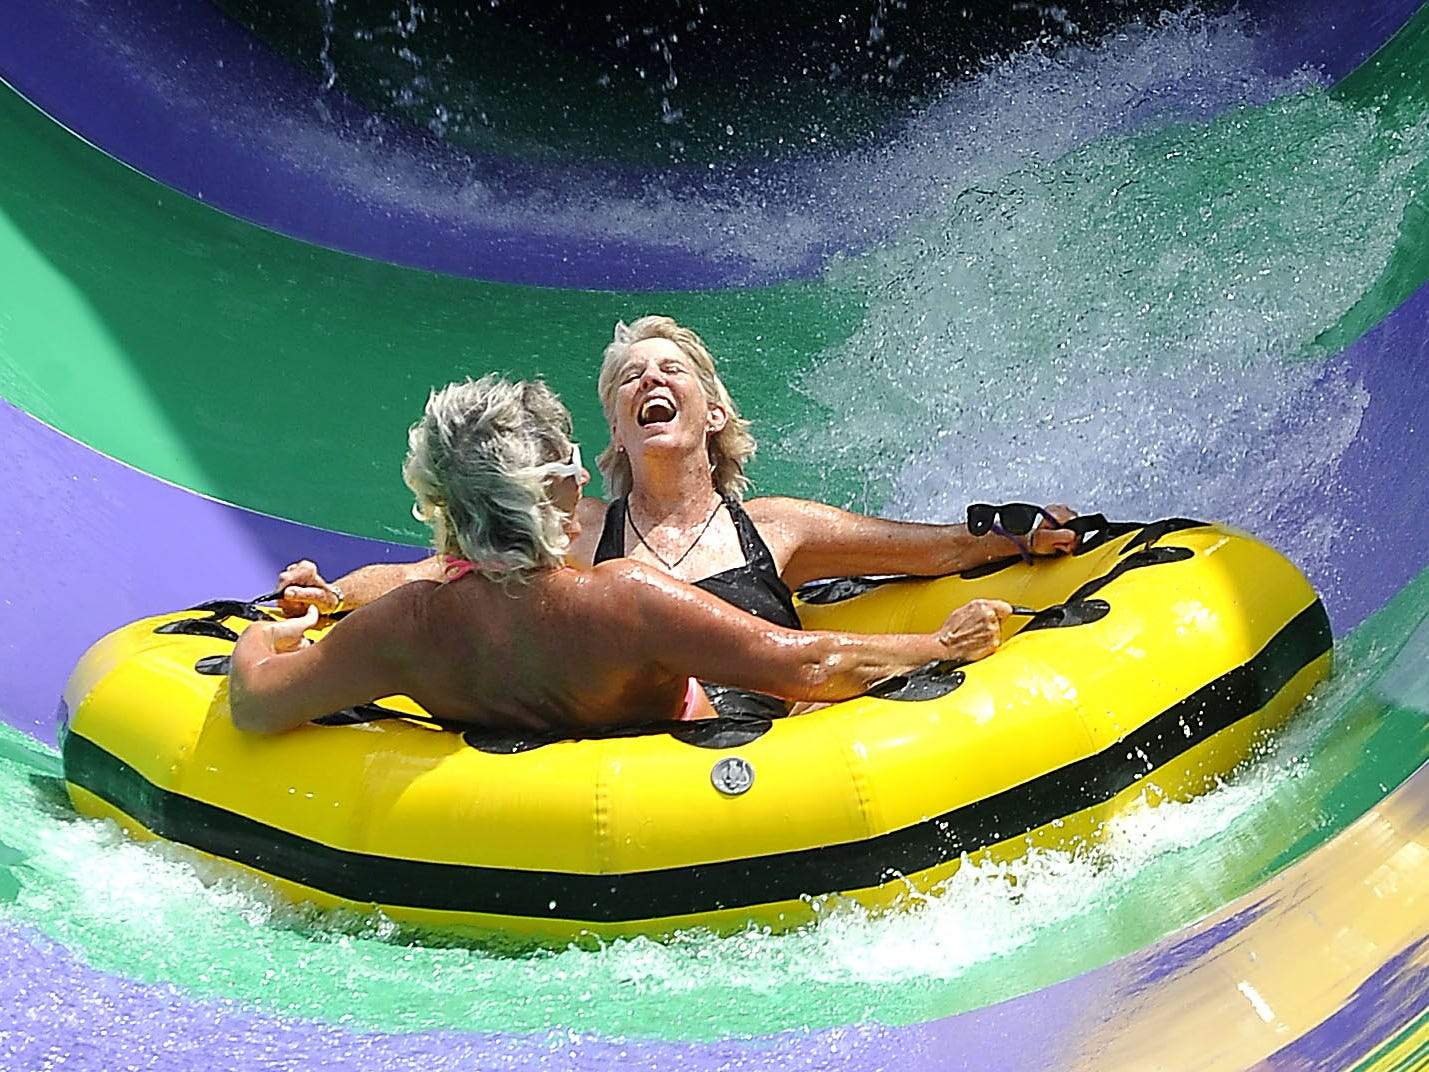 """Mary Hance, aka Ms. Cheap, laughs with excitement as she and Jennifer Clemens come out of the latest addition at Nashville Shores, """"The Big Kahuna,"""" on June 18, 2015. Clemens showed Ms. Cheap how she makes the most of her Nashville Shores season pass."""